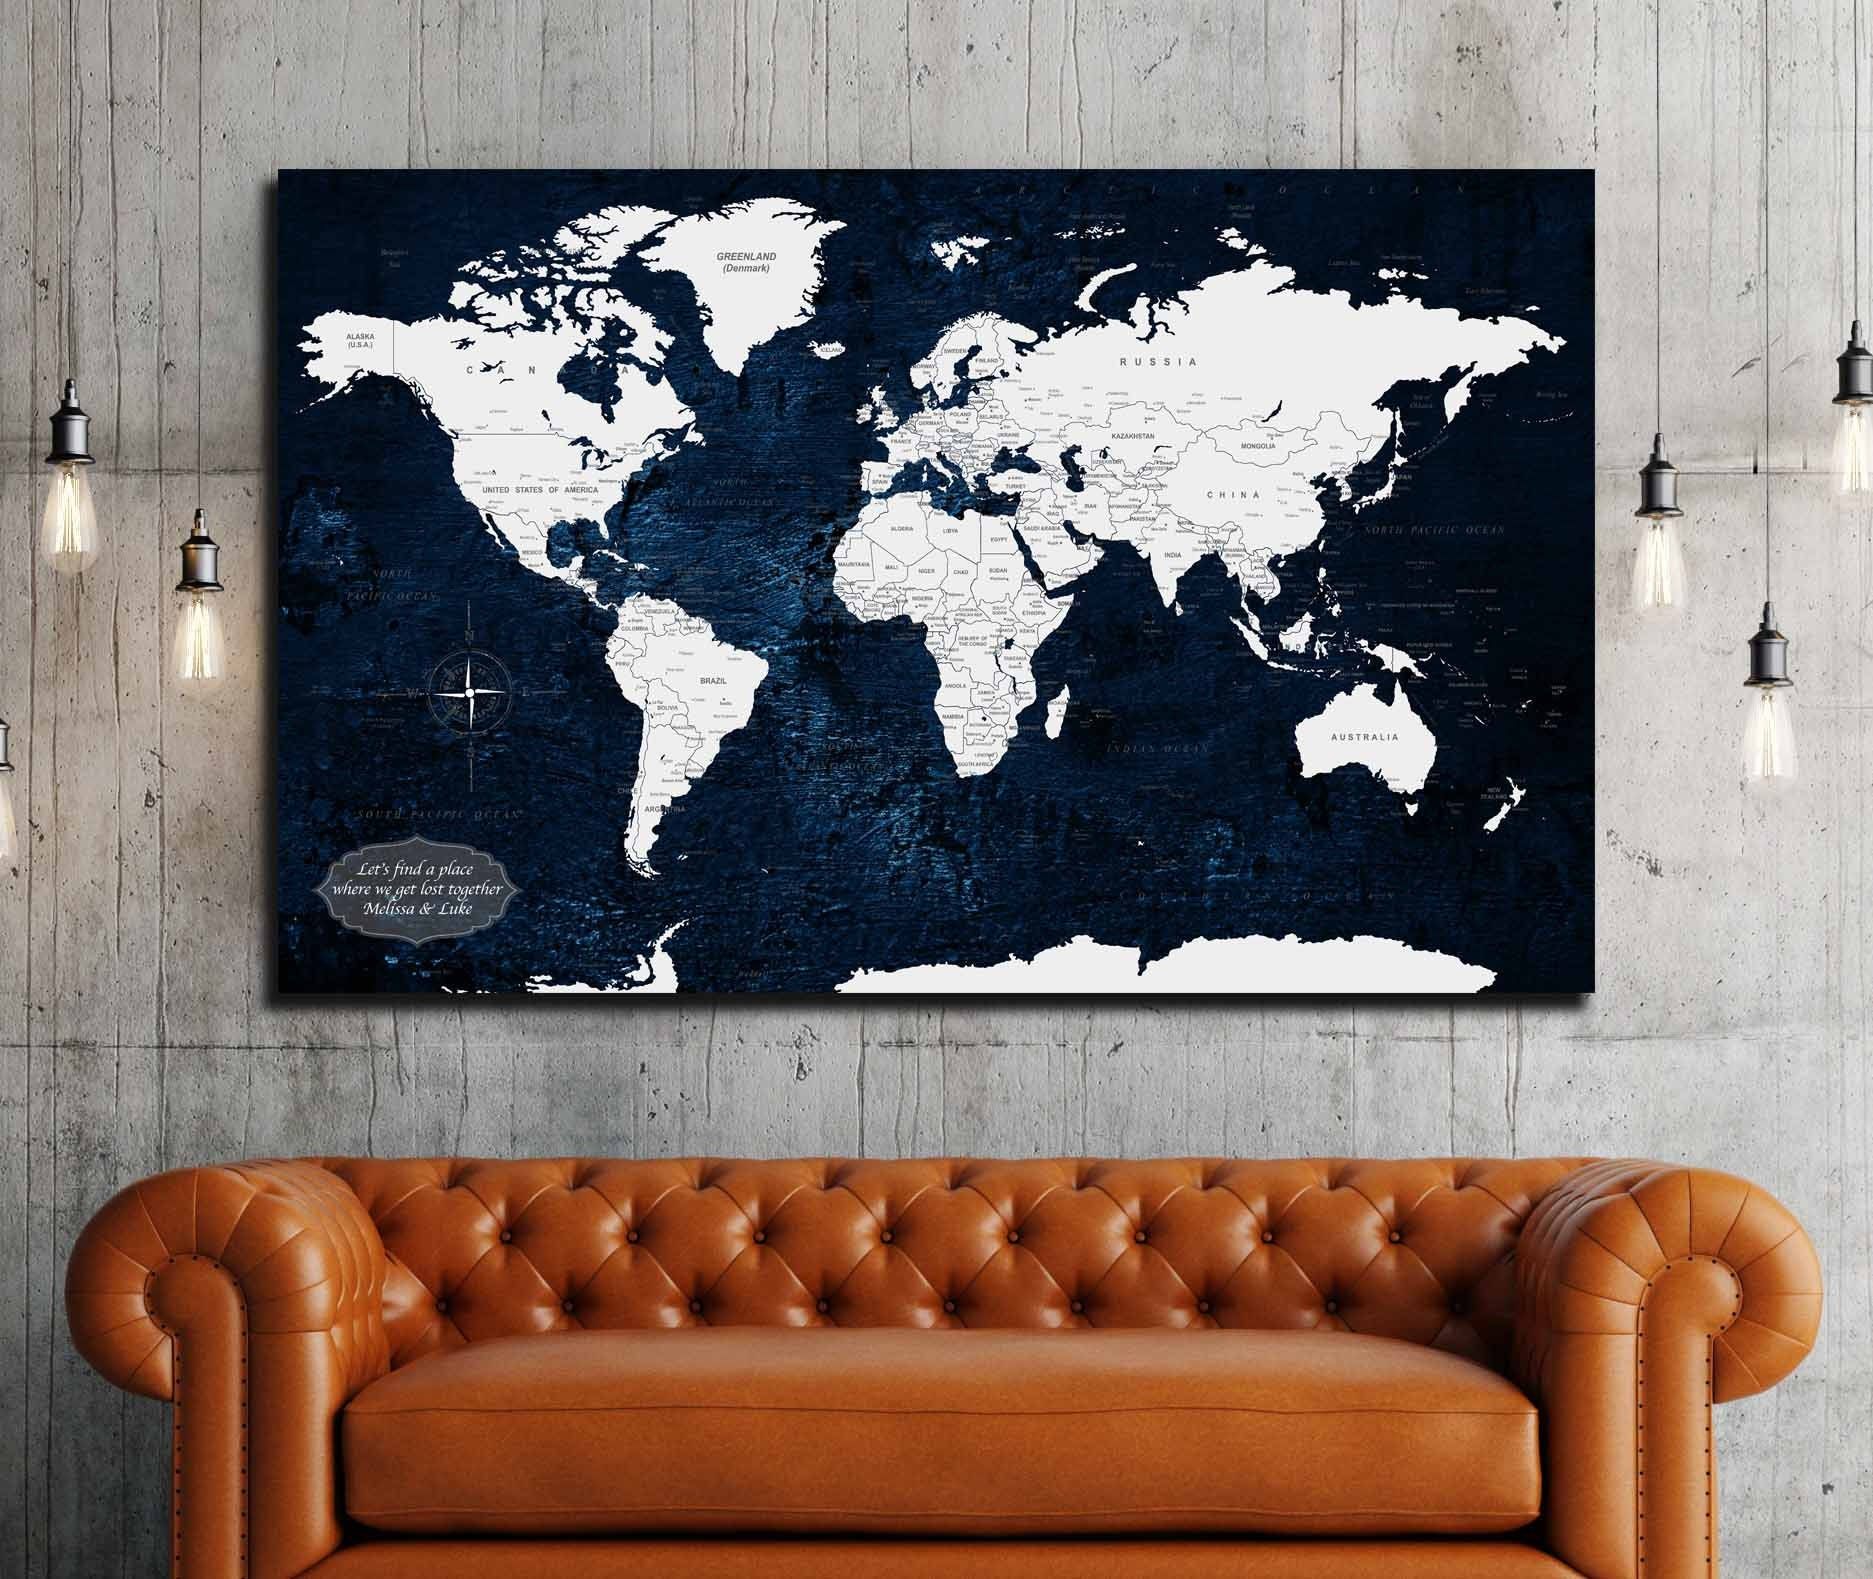 Personalized world map canvas print customize your travel map personalized world map canvas print customize your travel map anniversary gift idea push pin map art print world map canvas art map art gumiabroncs